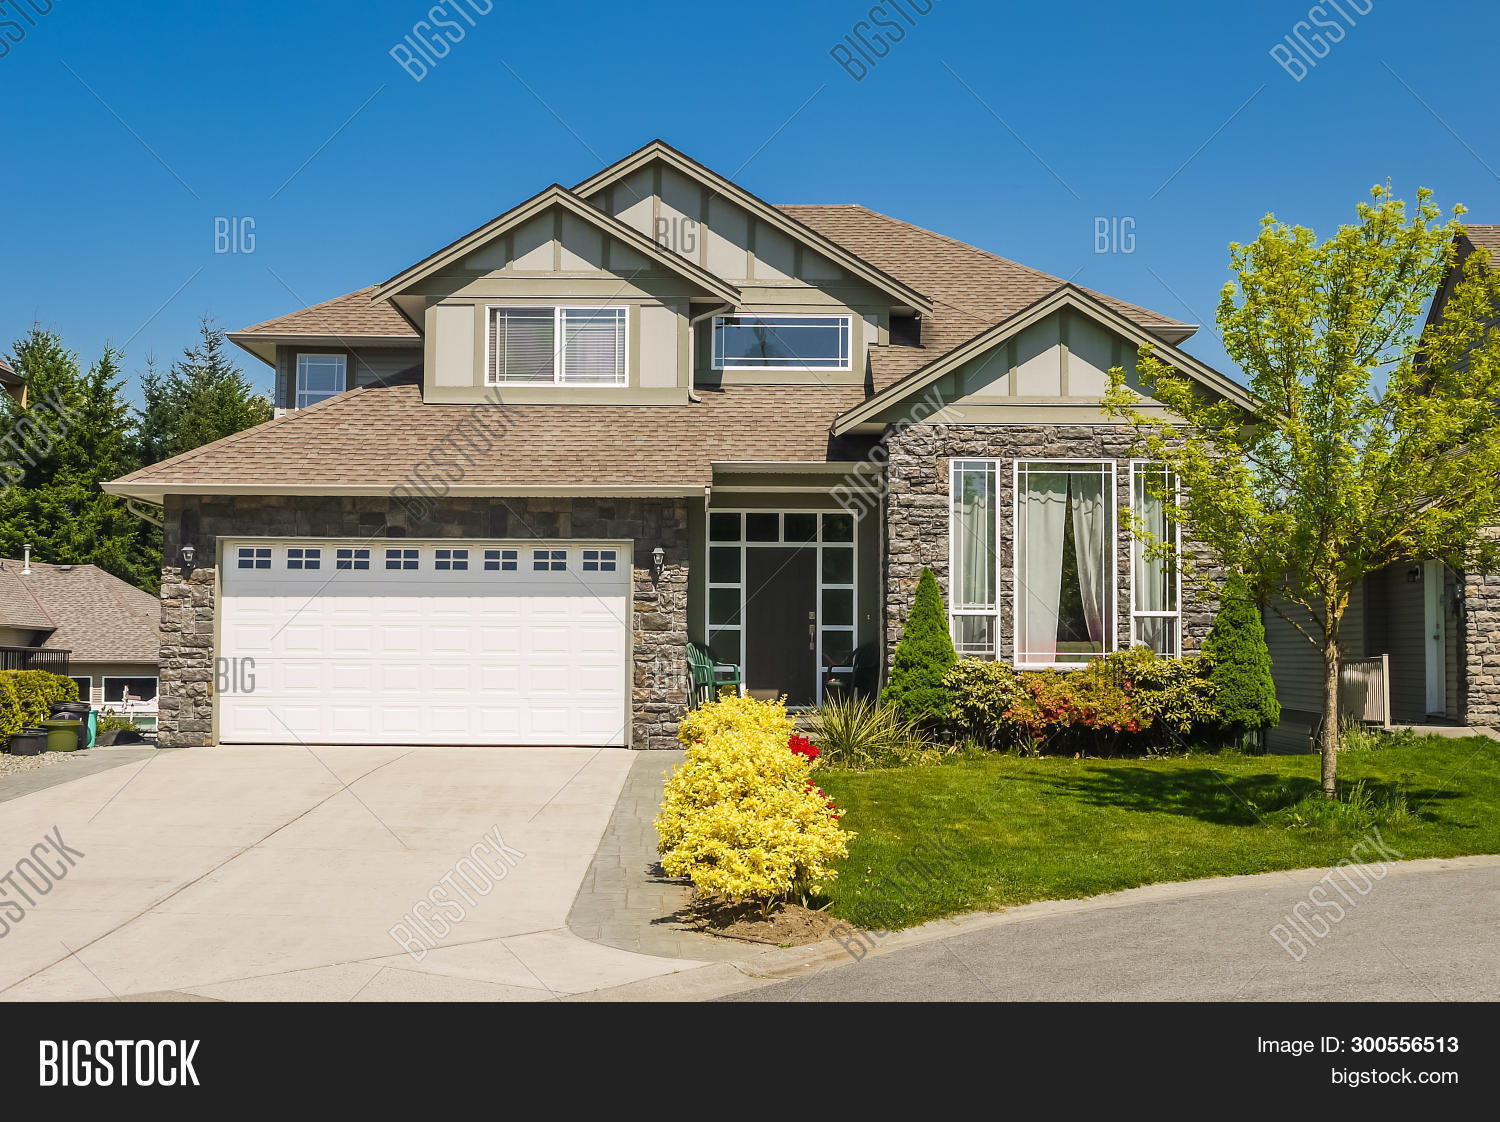 Big Family House With Concrete Driveway To Double Size Garage. Residential House Entrance With Lands